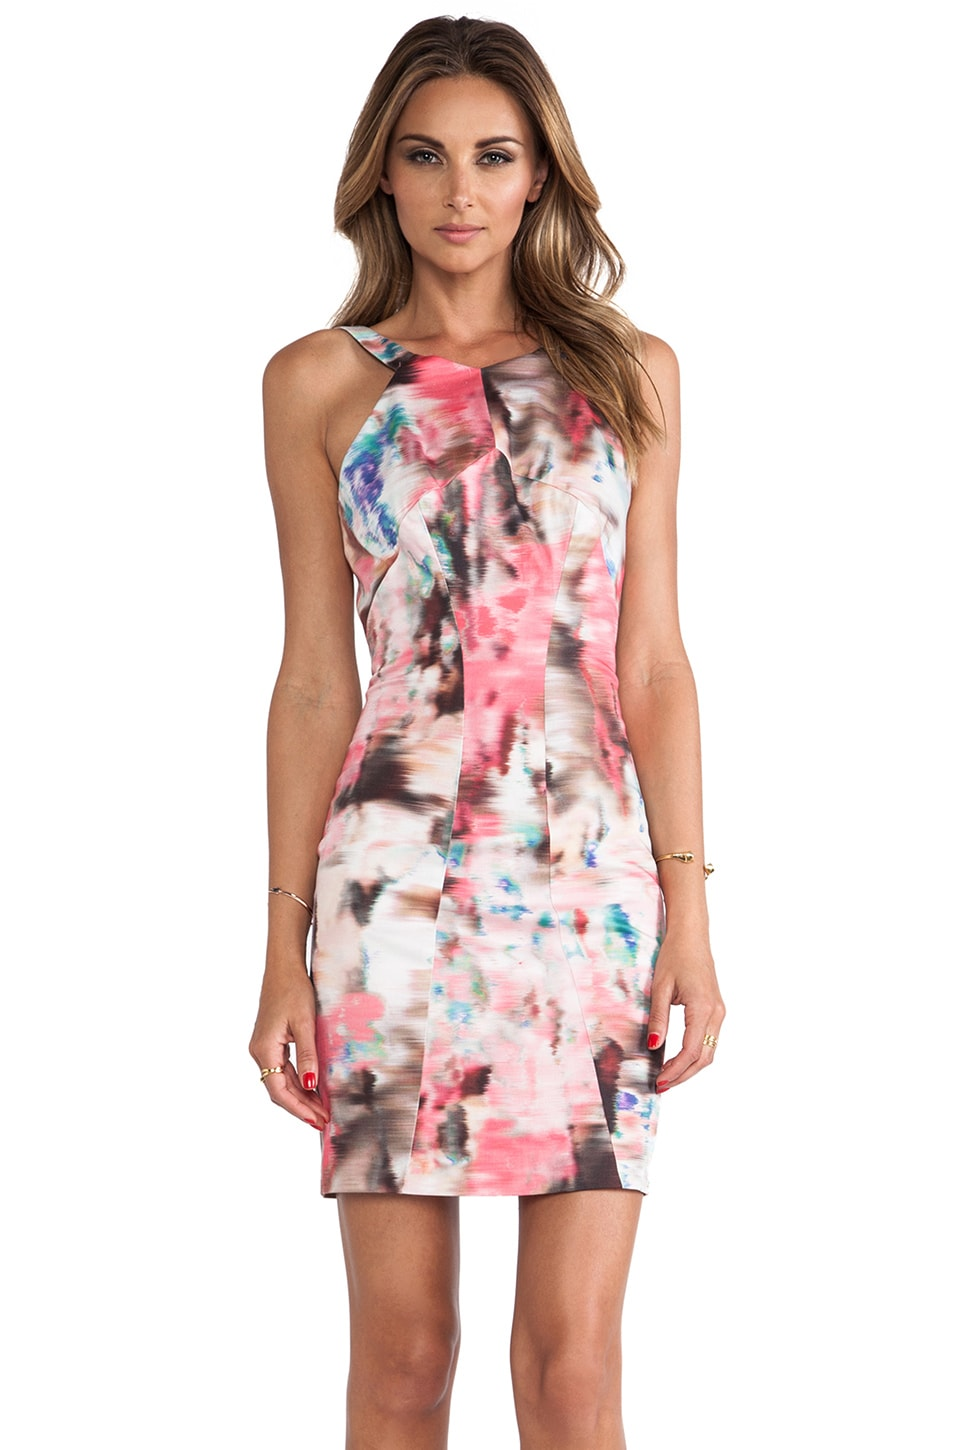 Black Halo Karmen Sheath Mini Dress in Decadence Print